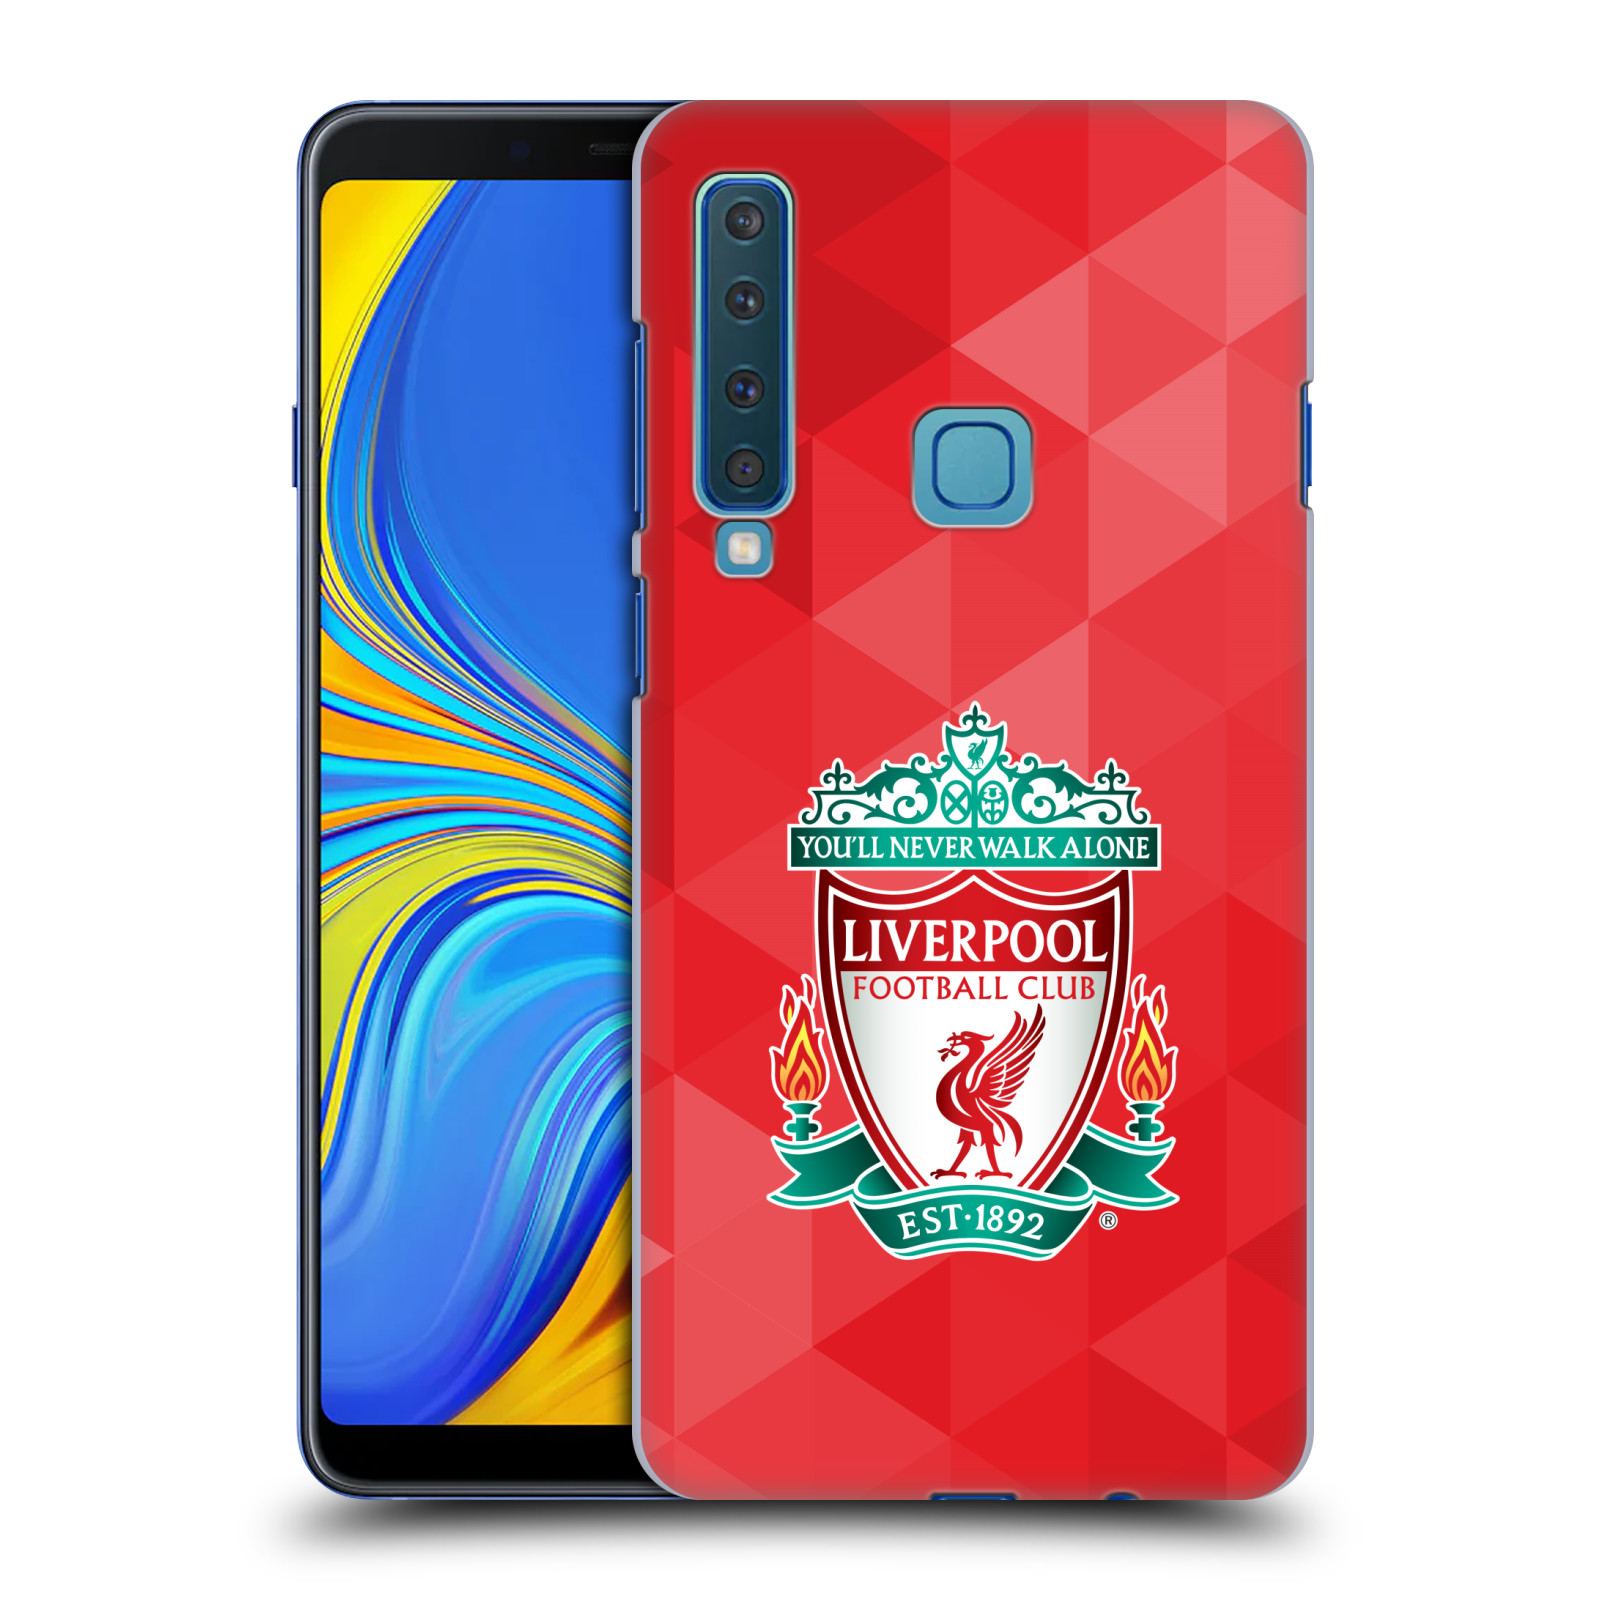 Plastové pouzdro na mobil Samsung Galaxy A9 (2018) - Head Case - ZNAK LIVERPOOL FC OFFICIAL GEOMETRIC RED